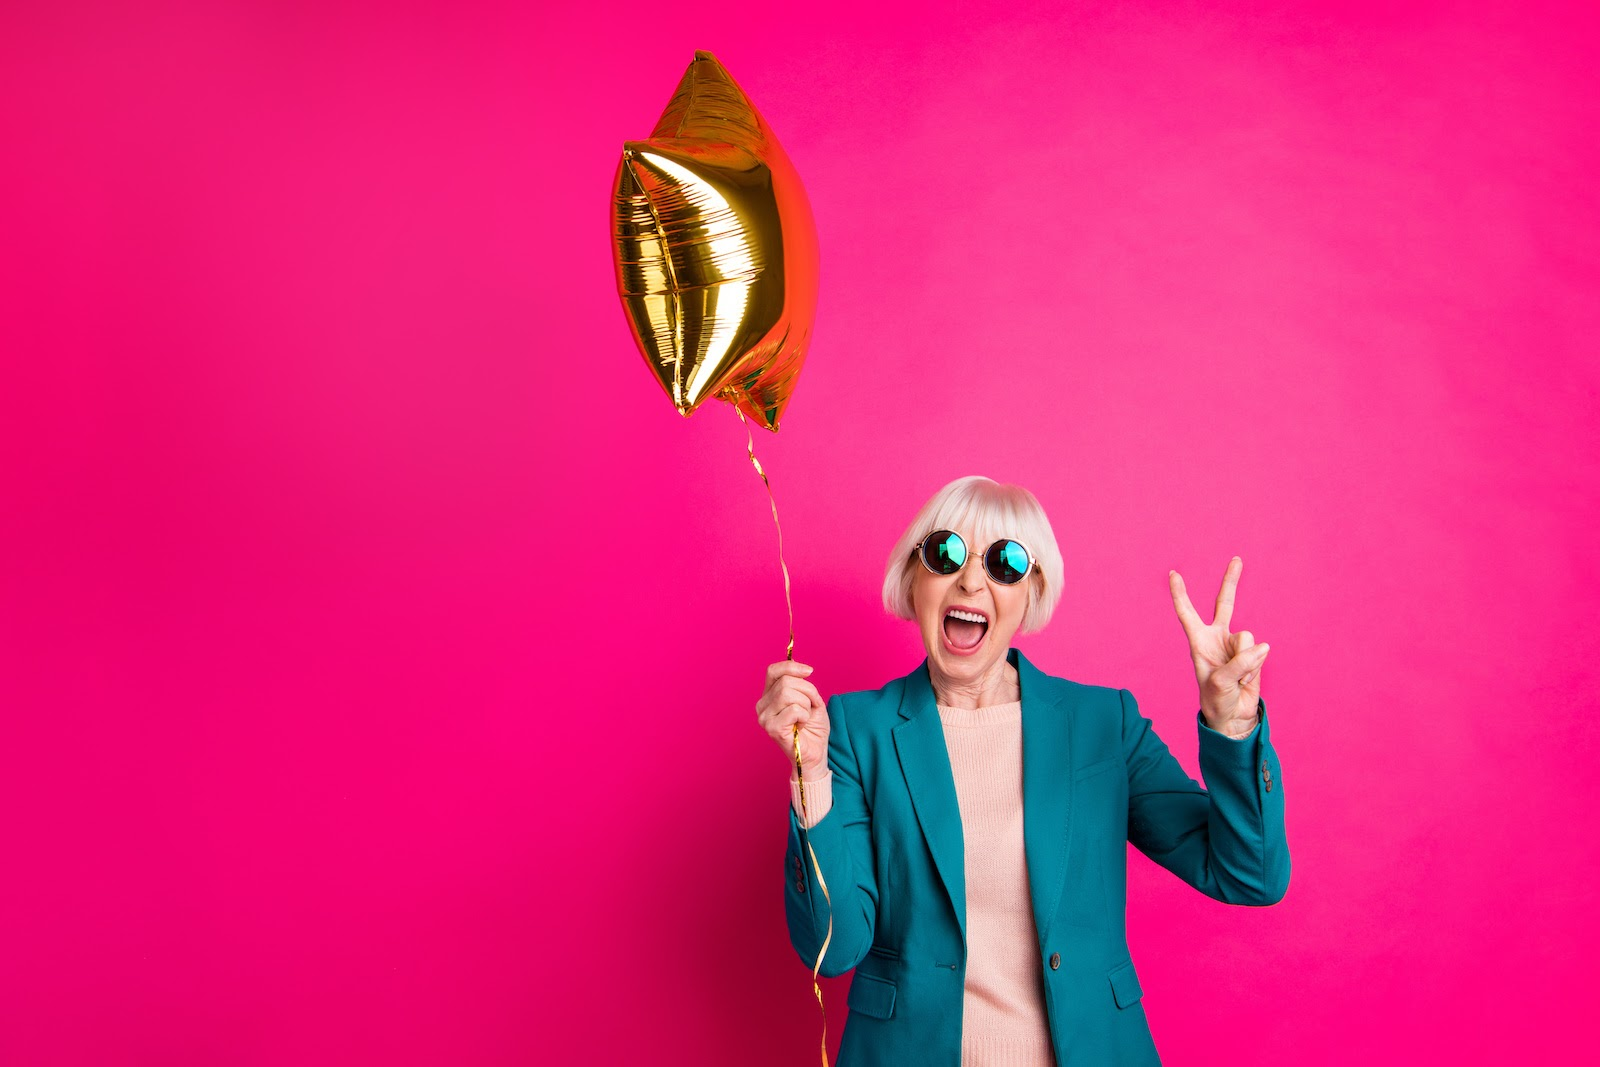 An older woman holds a party balloon in front of a hot pink background